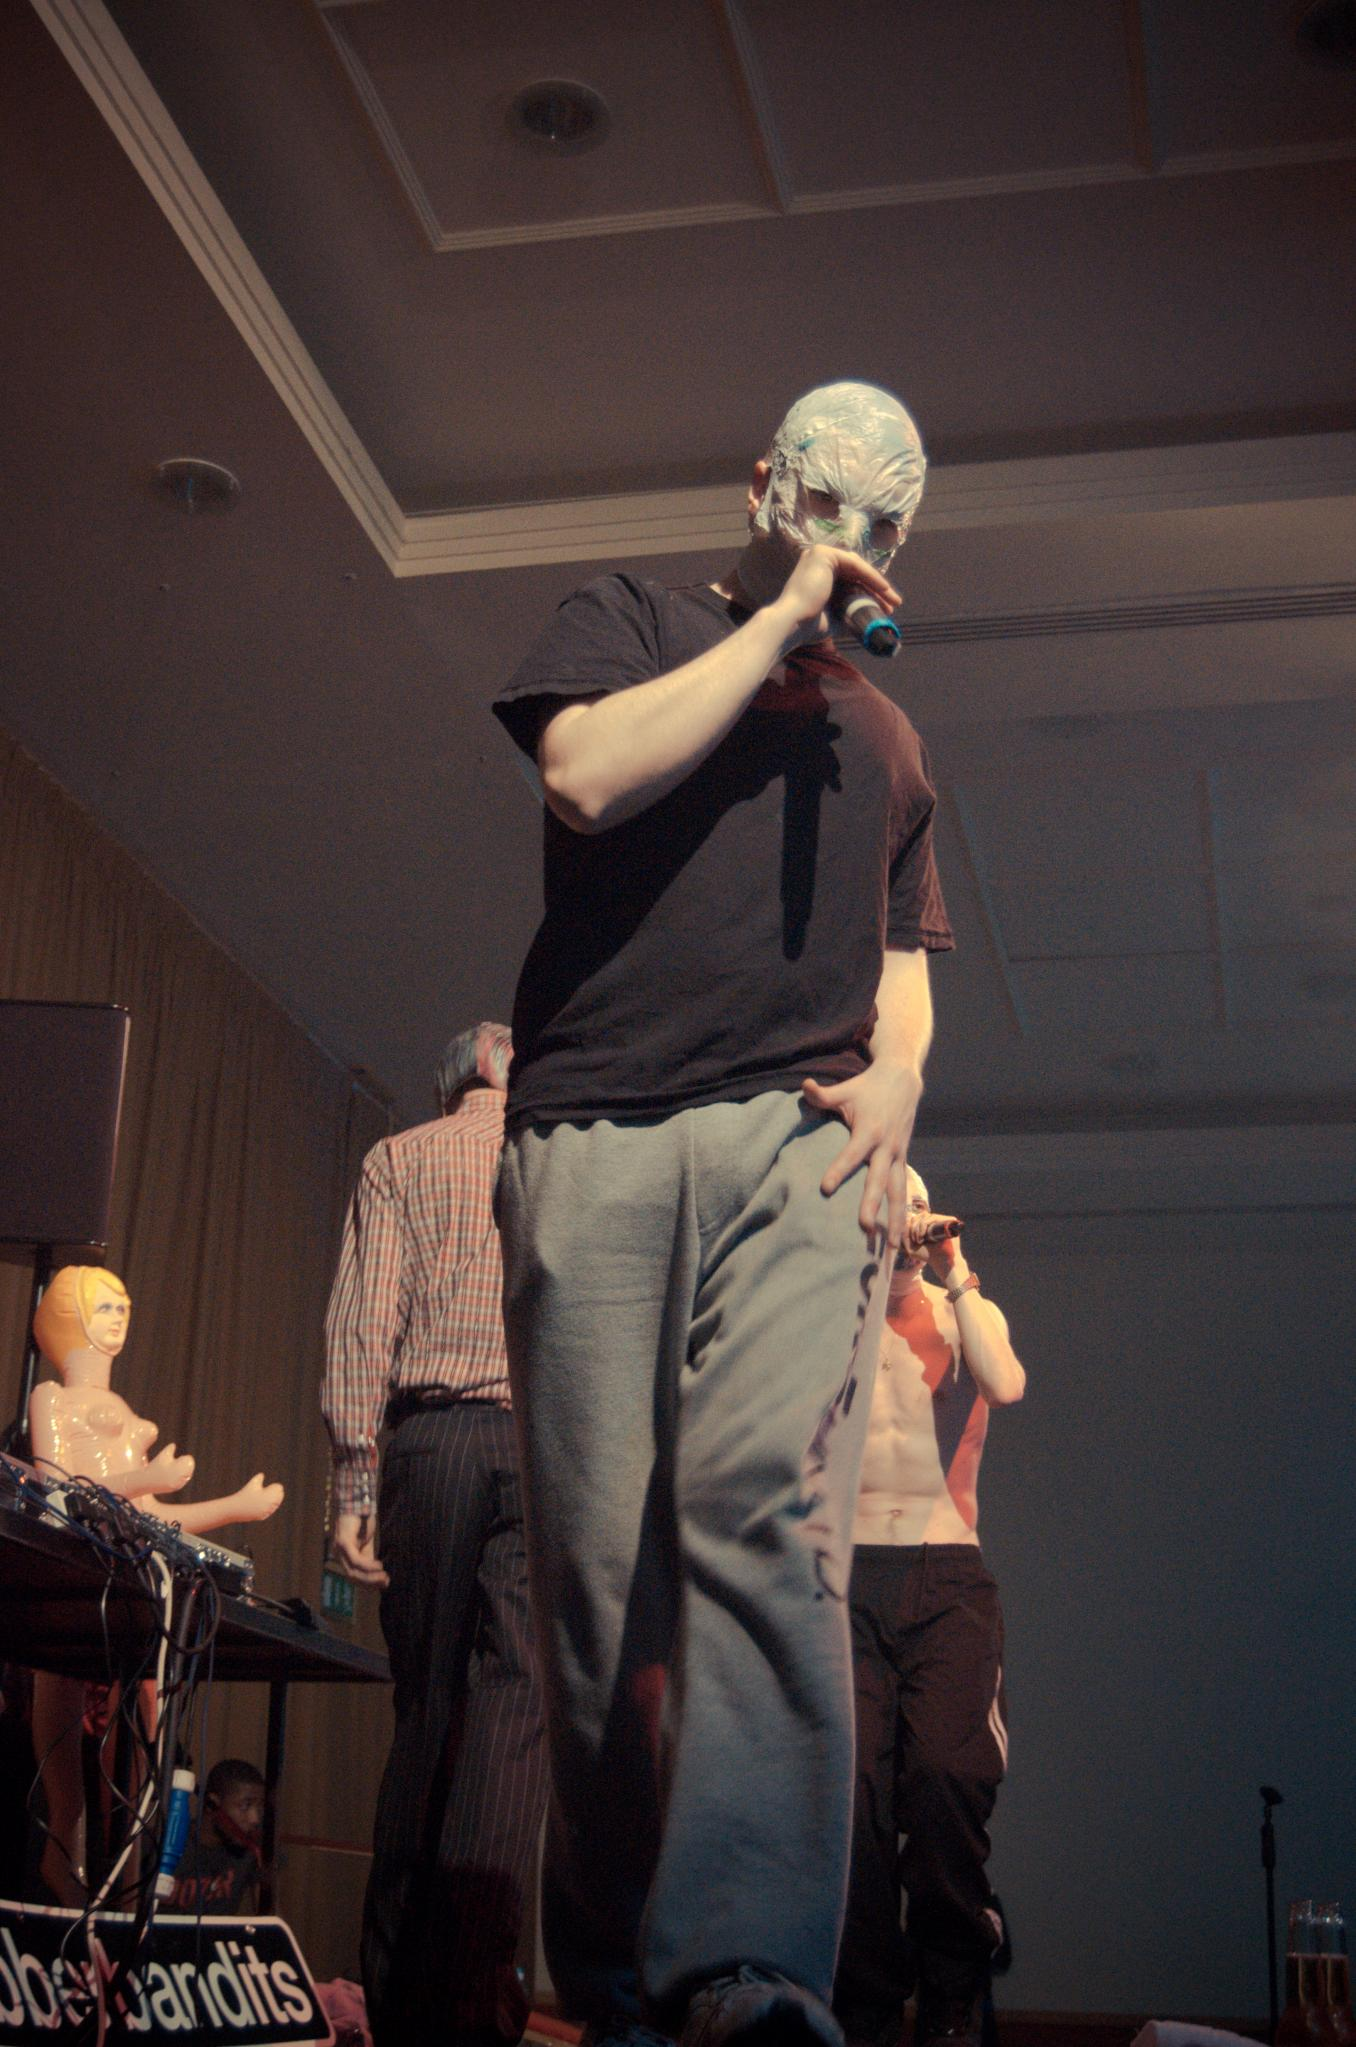 rubberbandits-29-of-42_5489010014_o